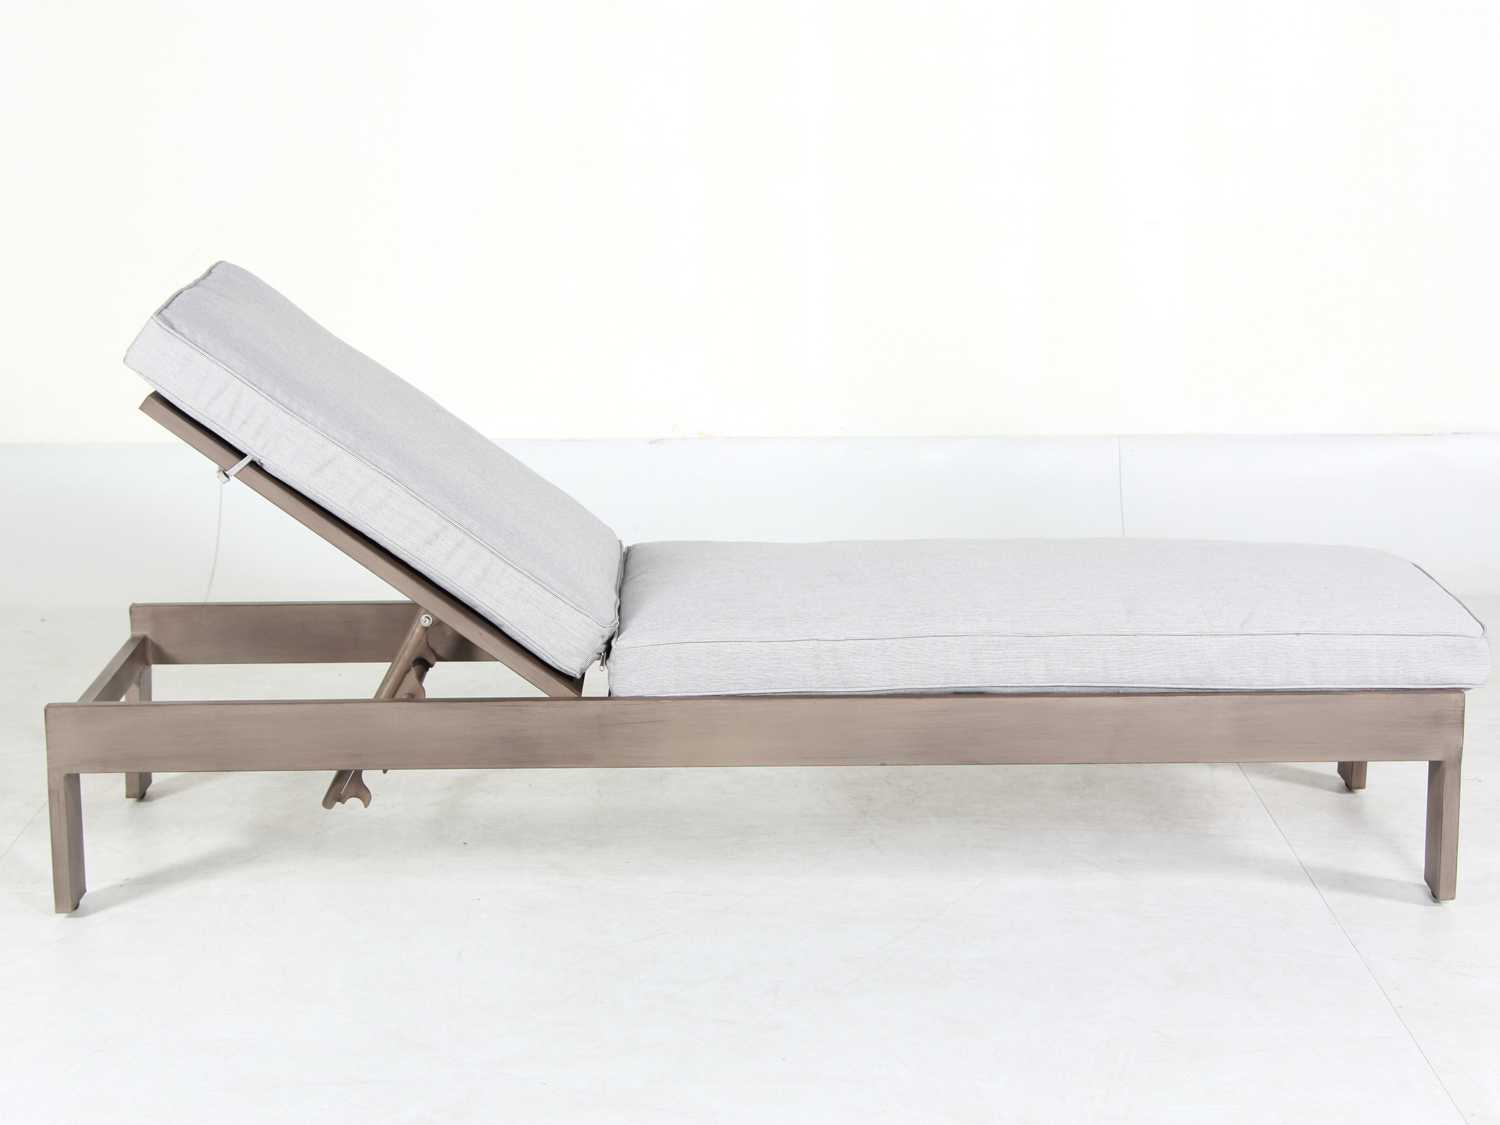 Teva aruba aluminum chaise lounge 101ch for Aluminum chaise lounges